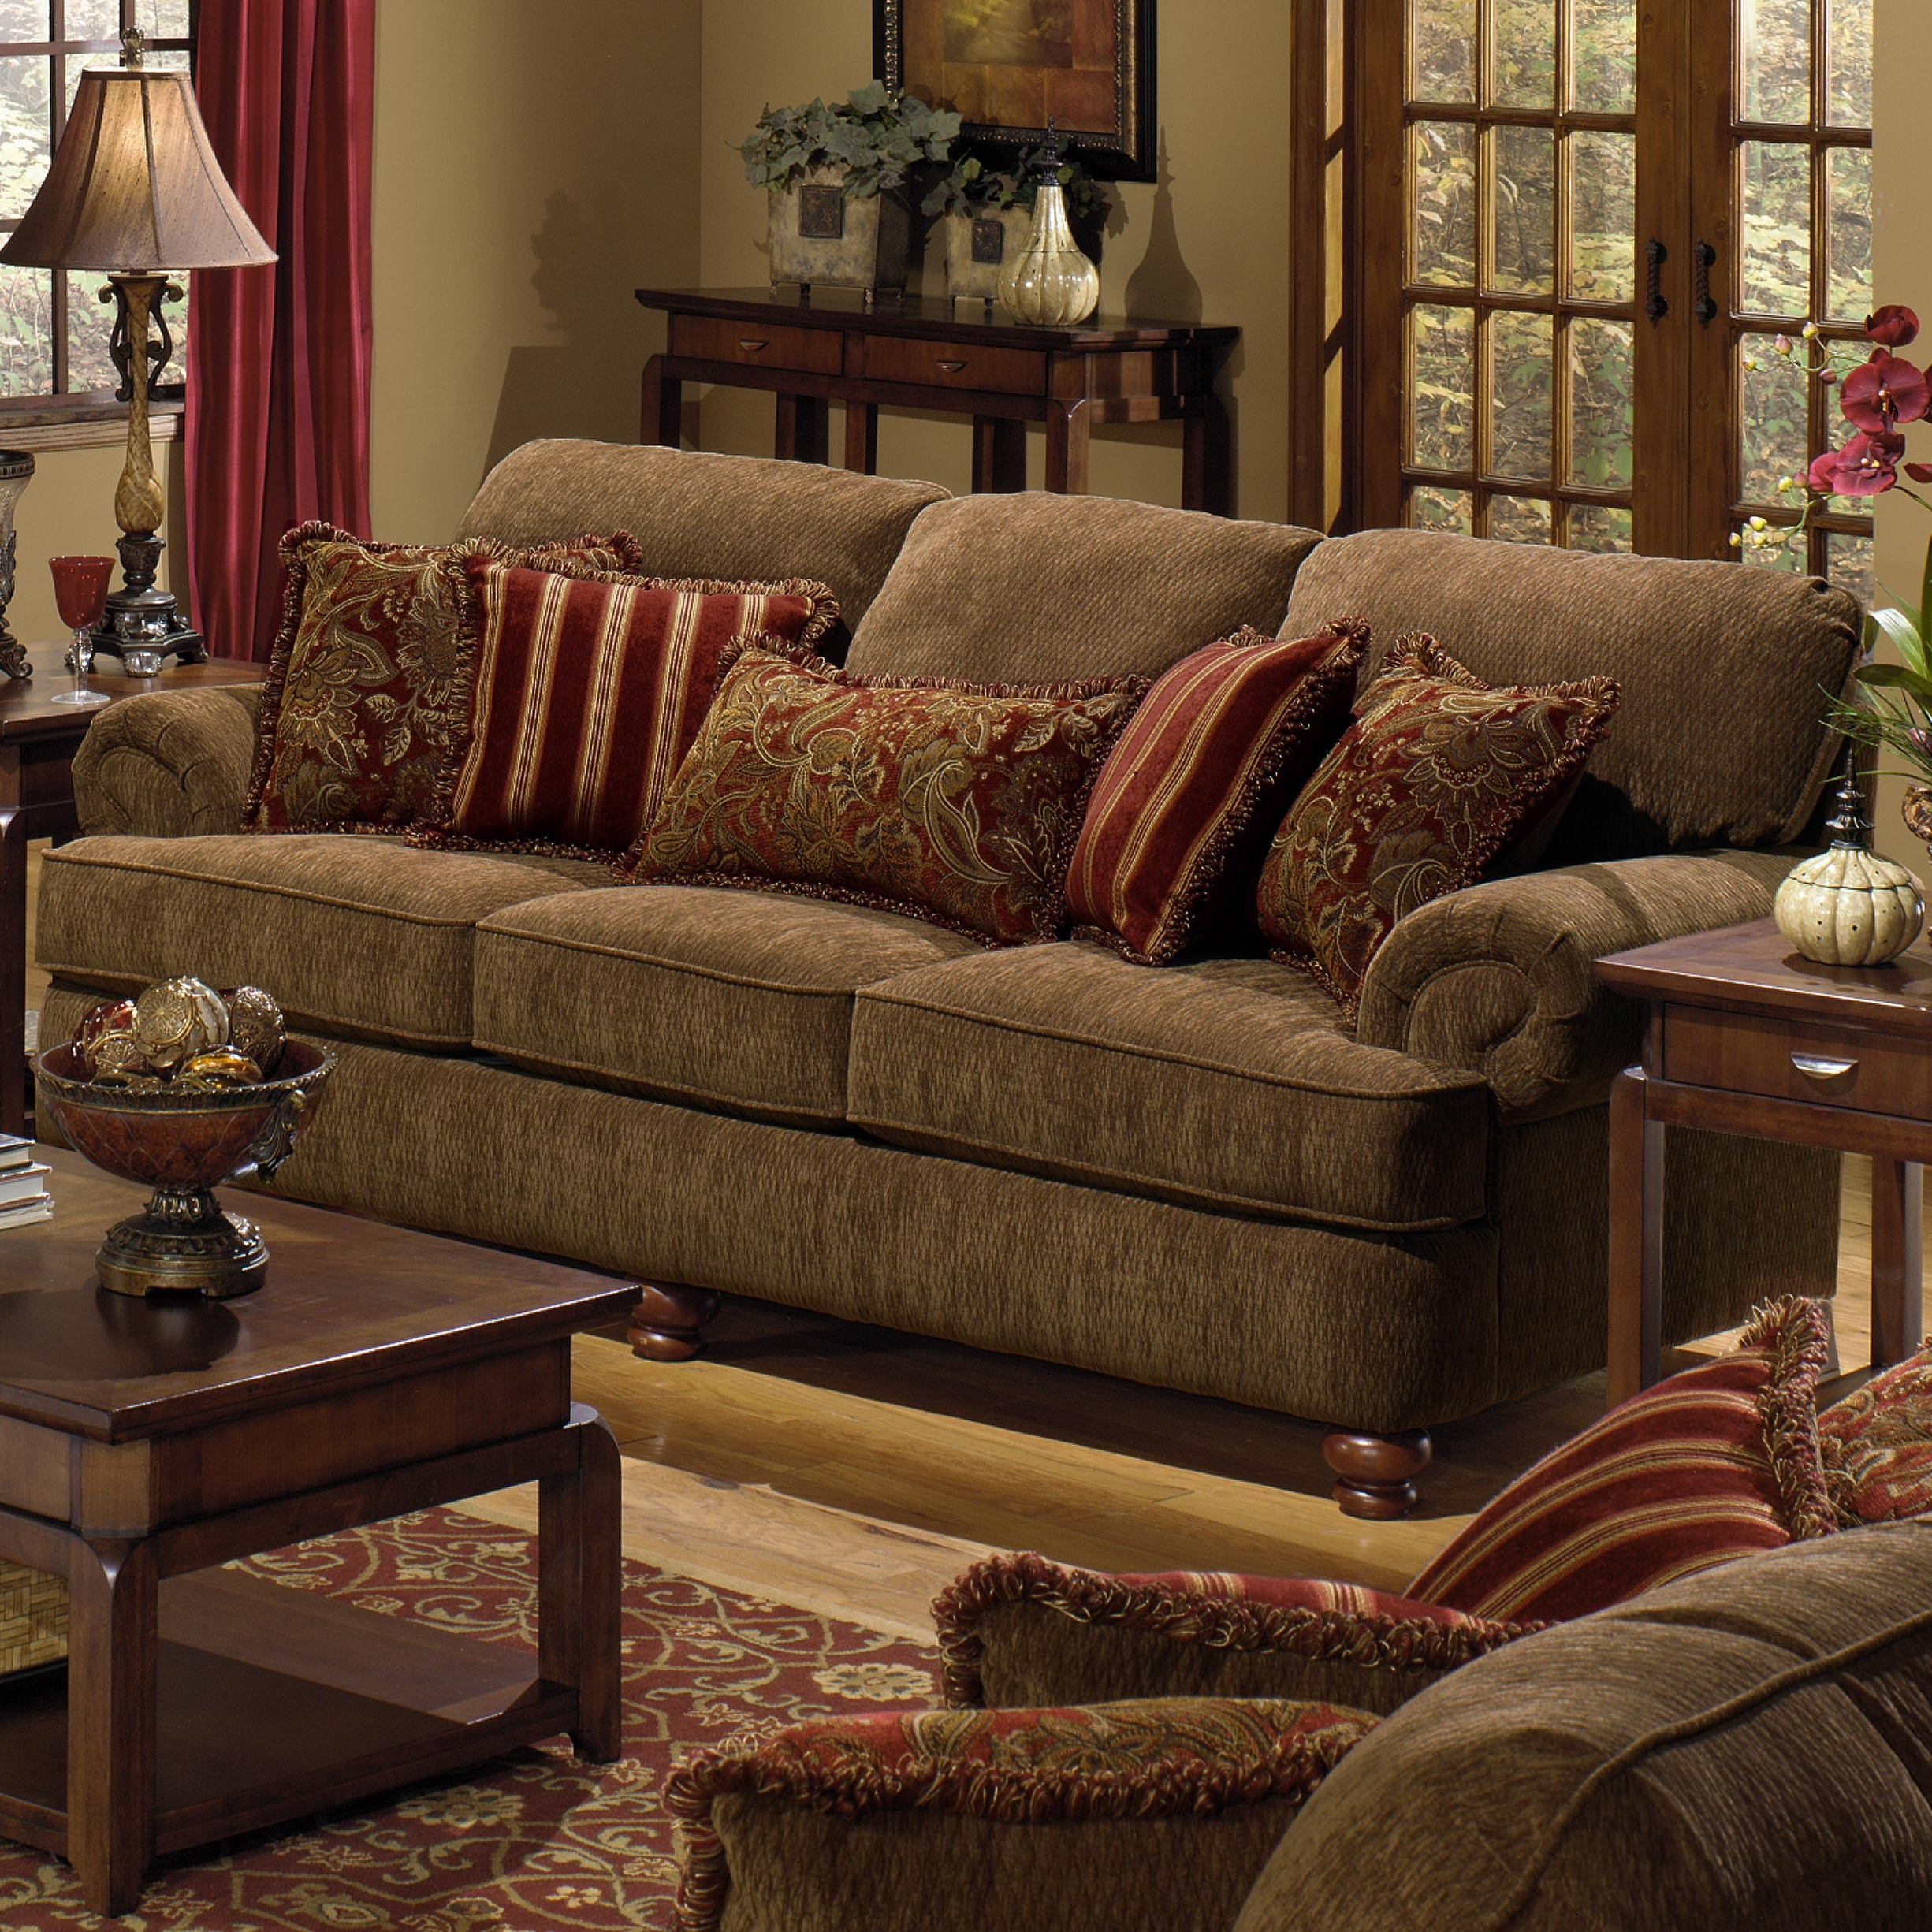 Current Living Room : Decorative Pillows For Sofa Cheap Decorative With Sofas With Oversized Pillows (View 4 of 20)